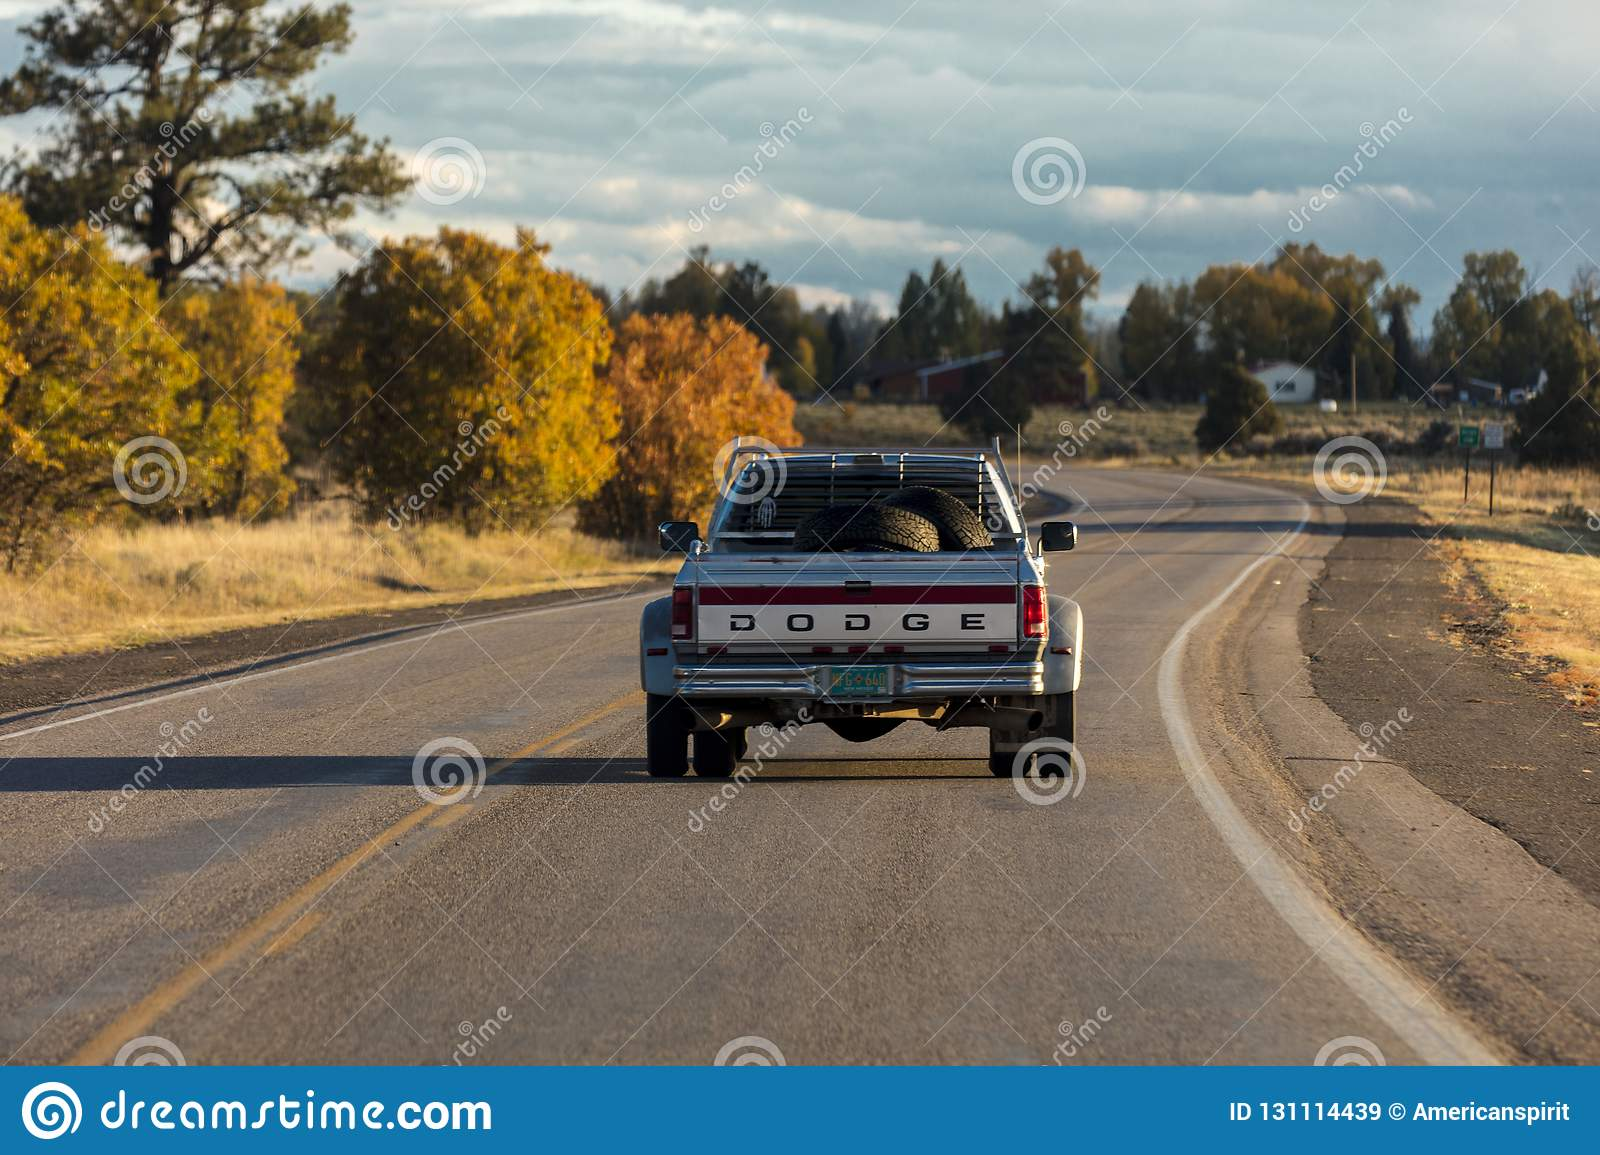 Dodge Pickup truck drives in Southern Colorado